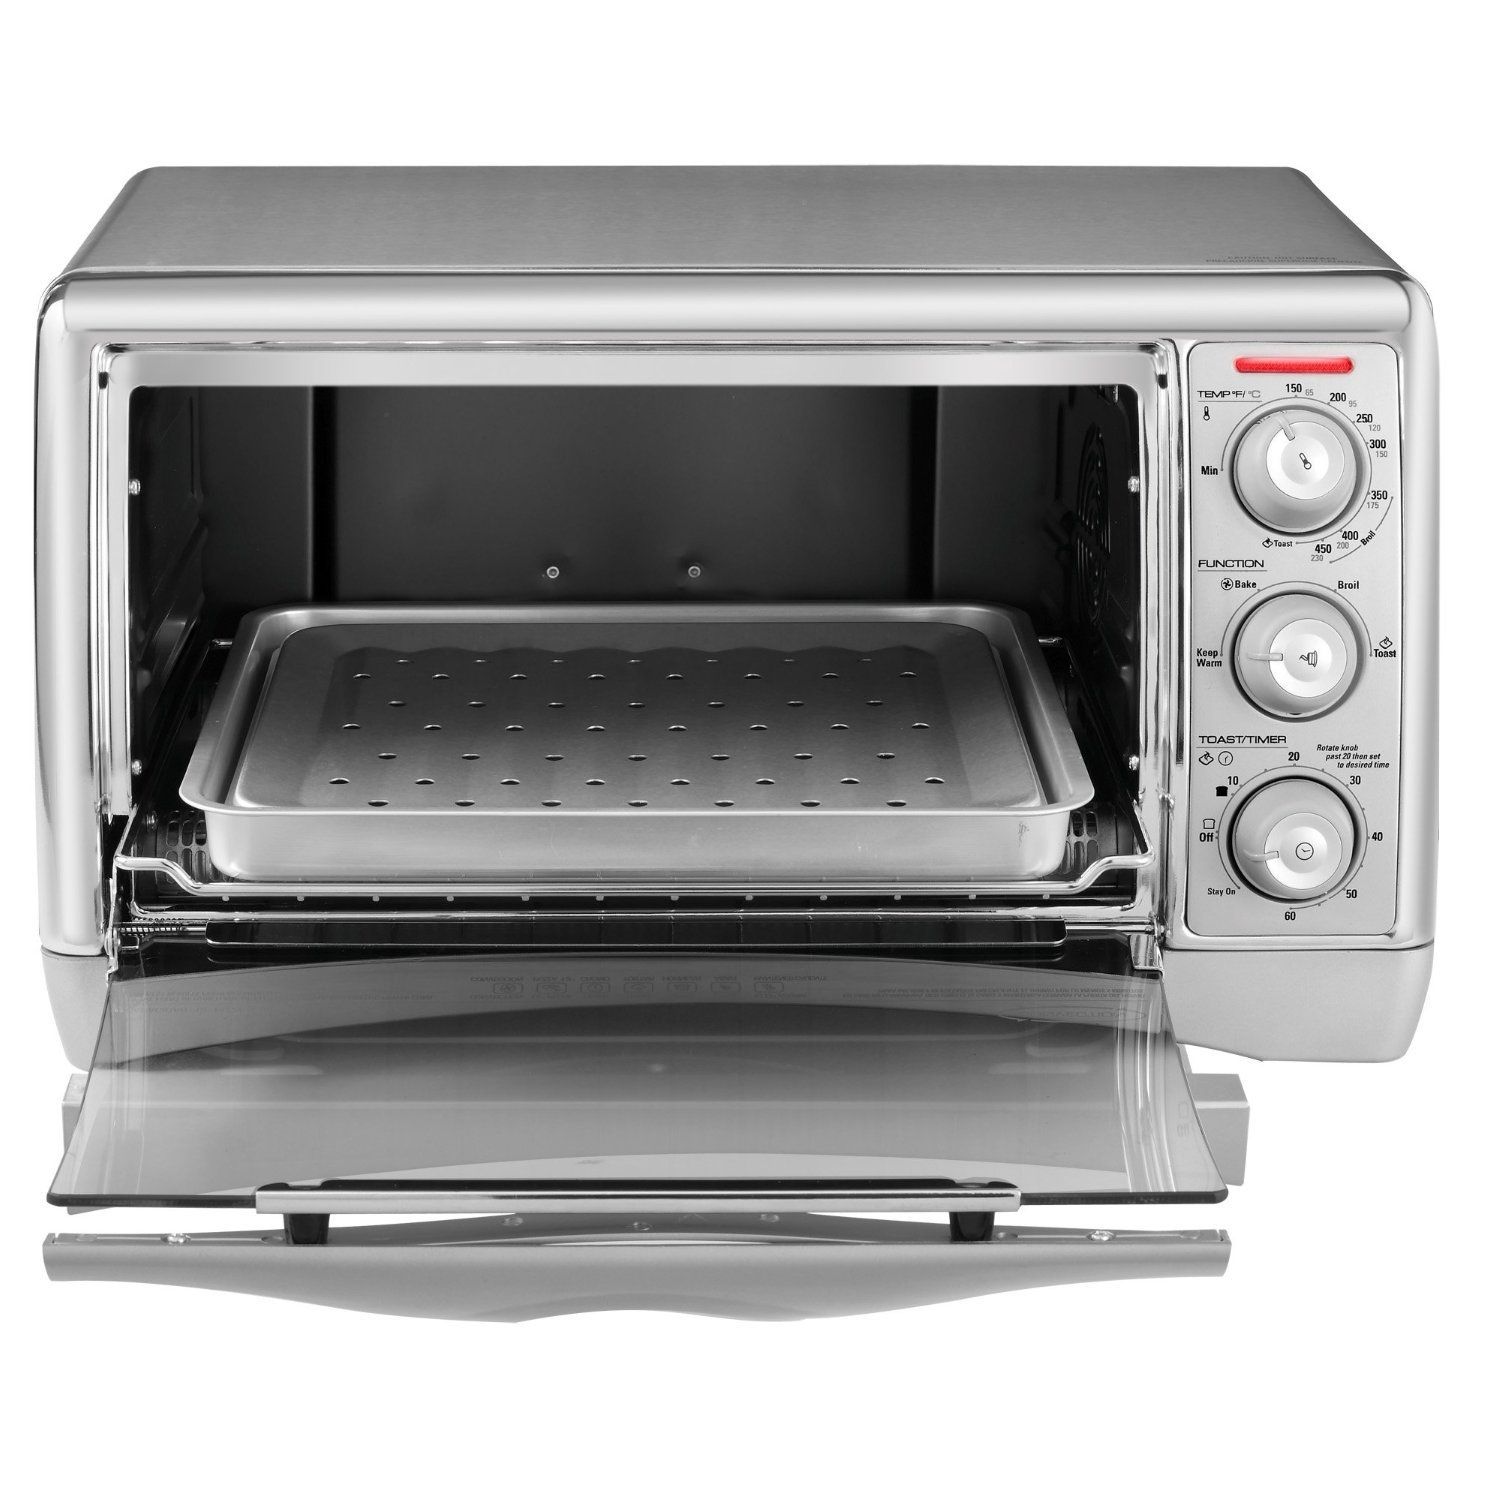 Best Toaster Oven Reviews 2014 Top 10 Toaster Ovens Review Ebooks